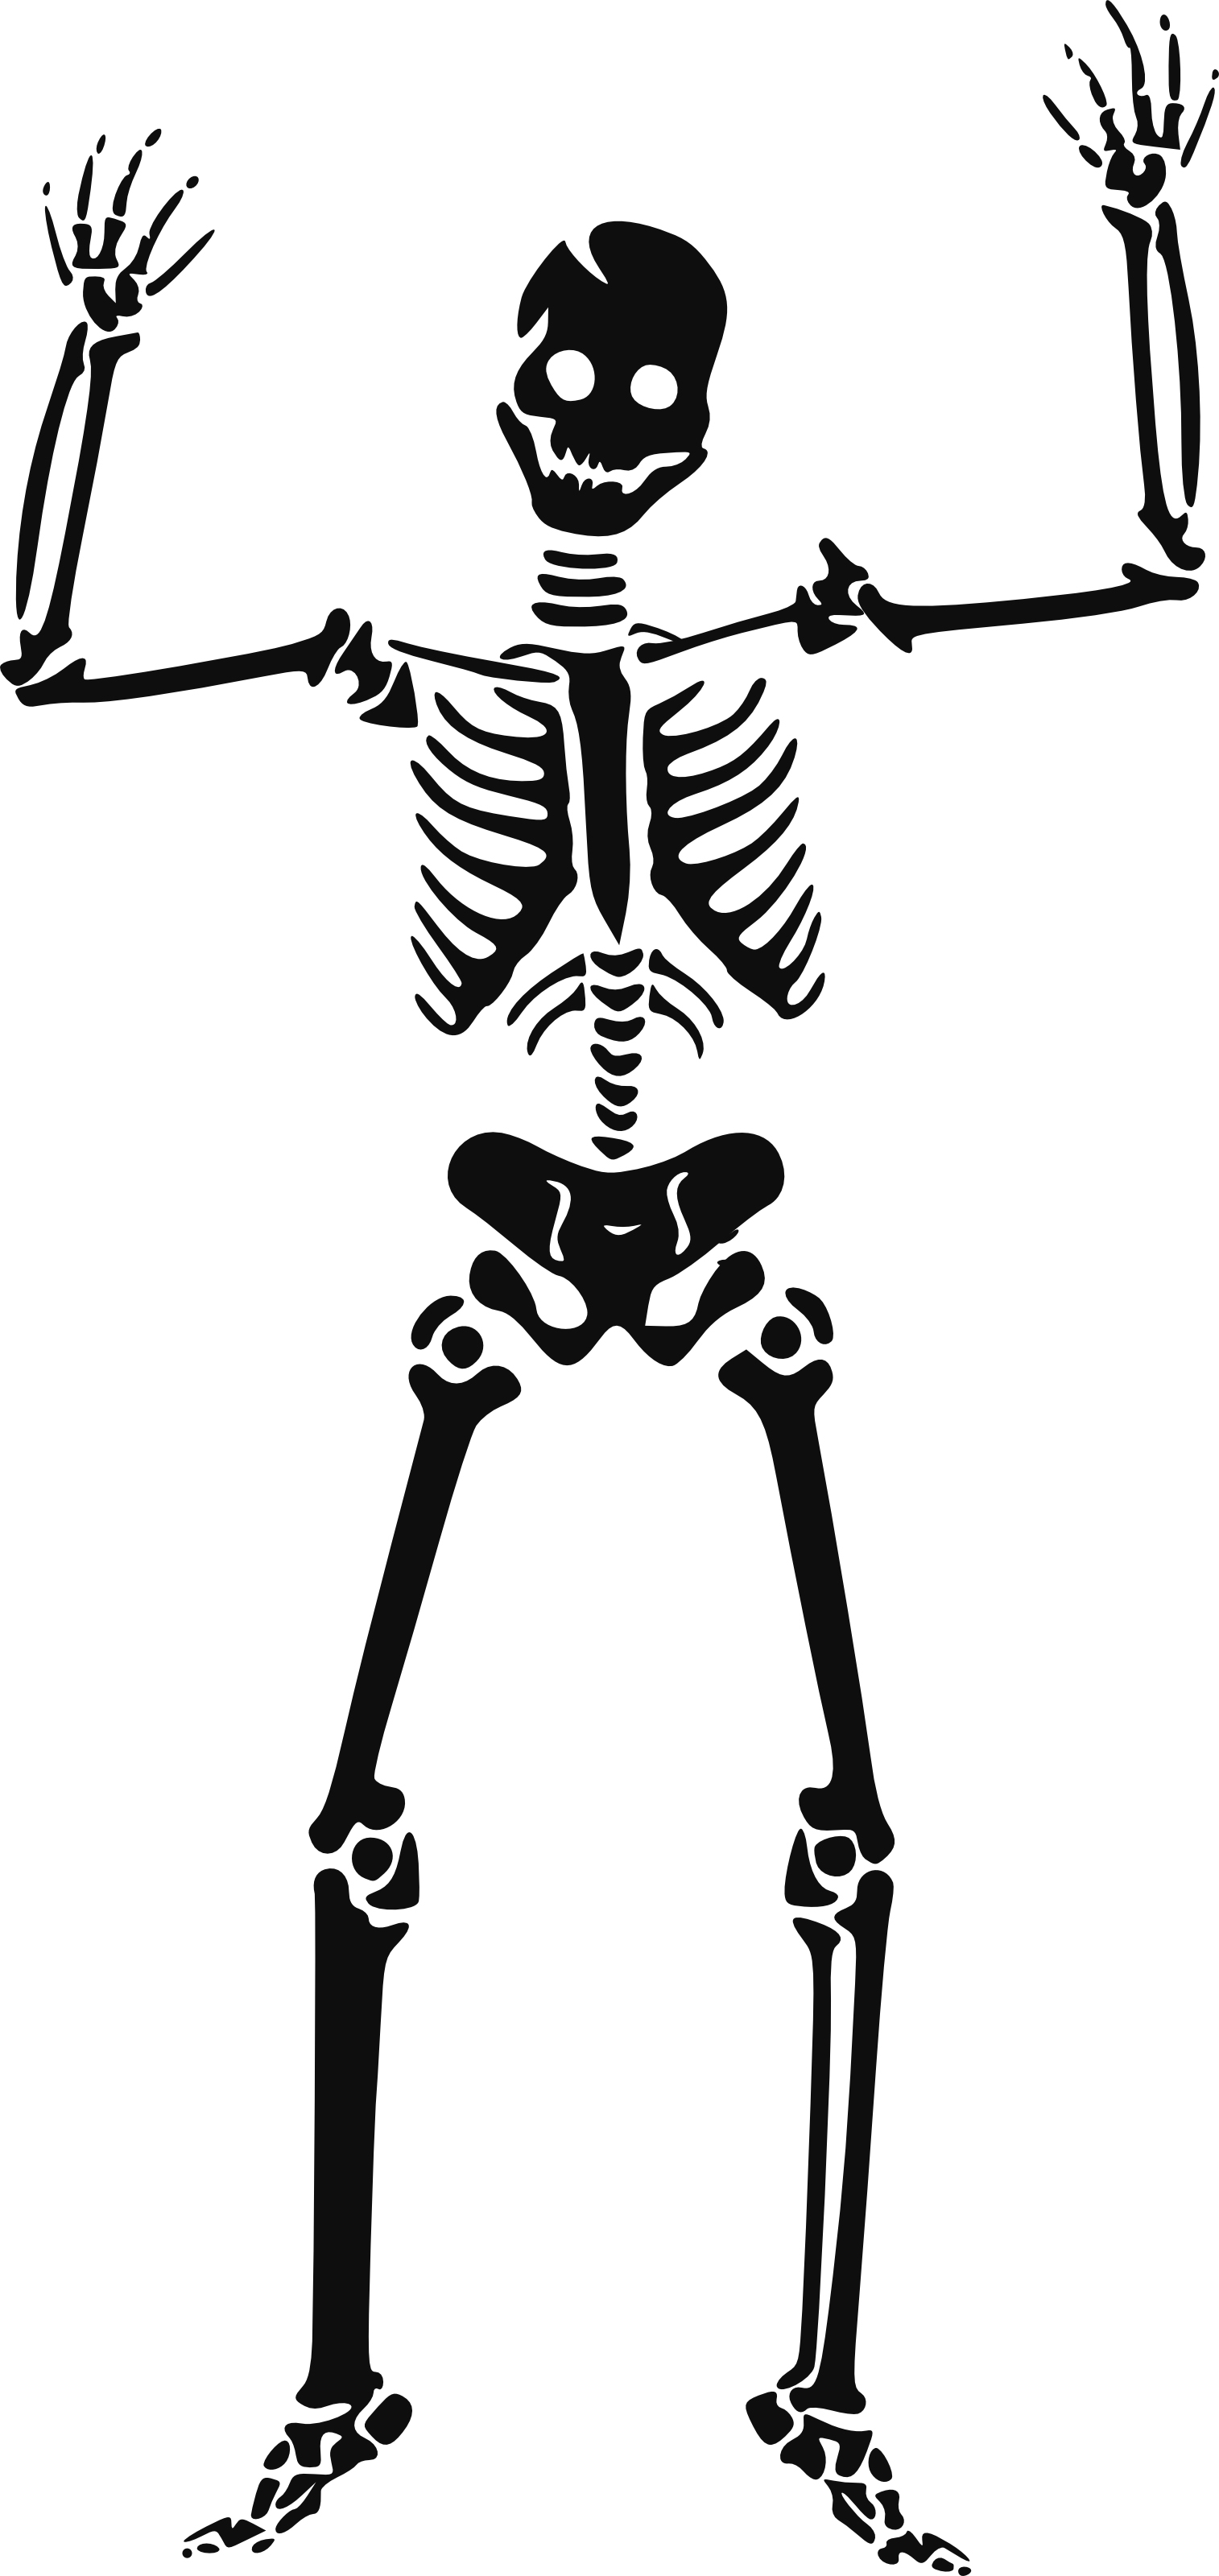 Happy Skeleton - Free Halloween Vector Clipart Illustration by 0001117